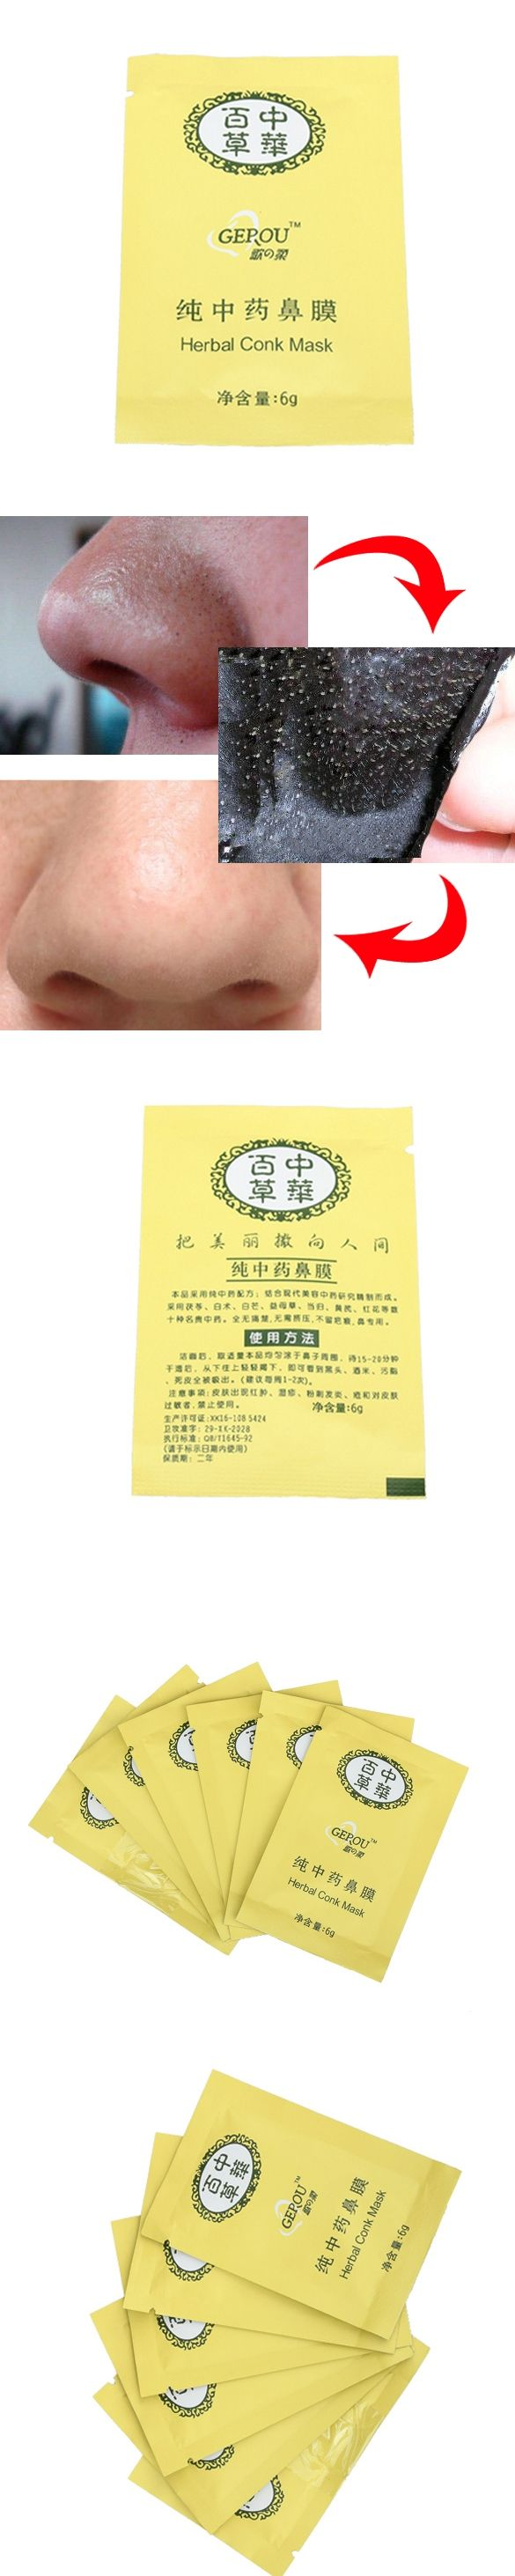 Summer Use Herbal Deep Cleansing Nose Pores Mask Blackhead Remove For Skin Care For Women Men Face Treatment  High Quali YF2017